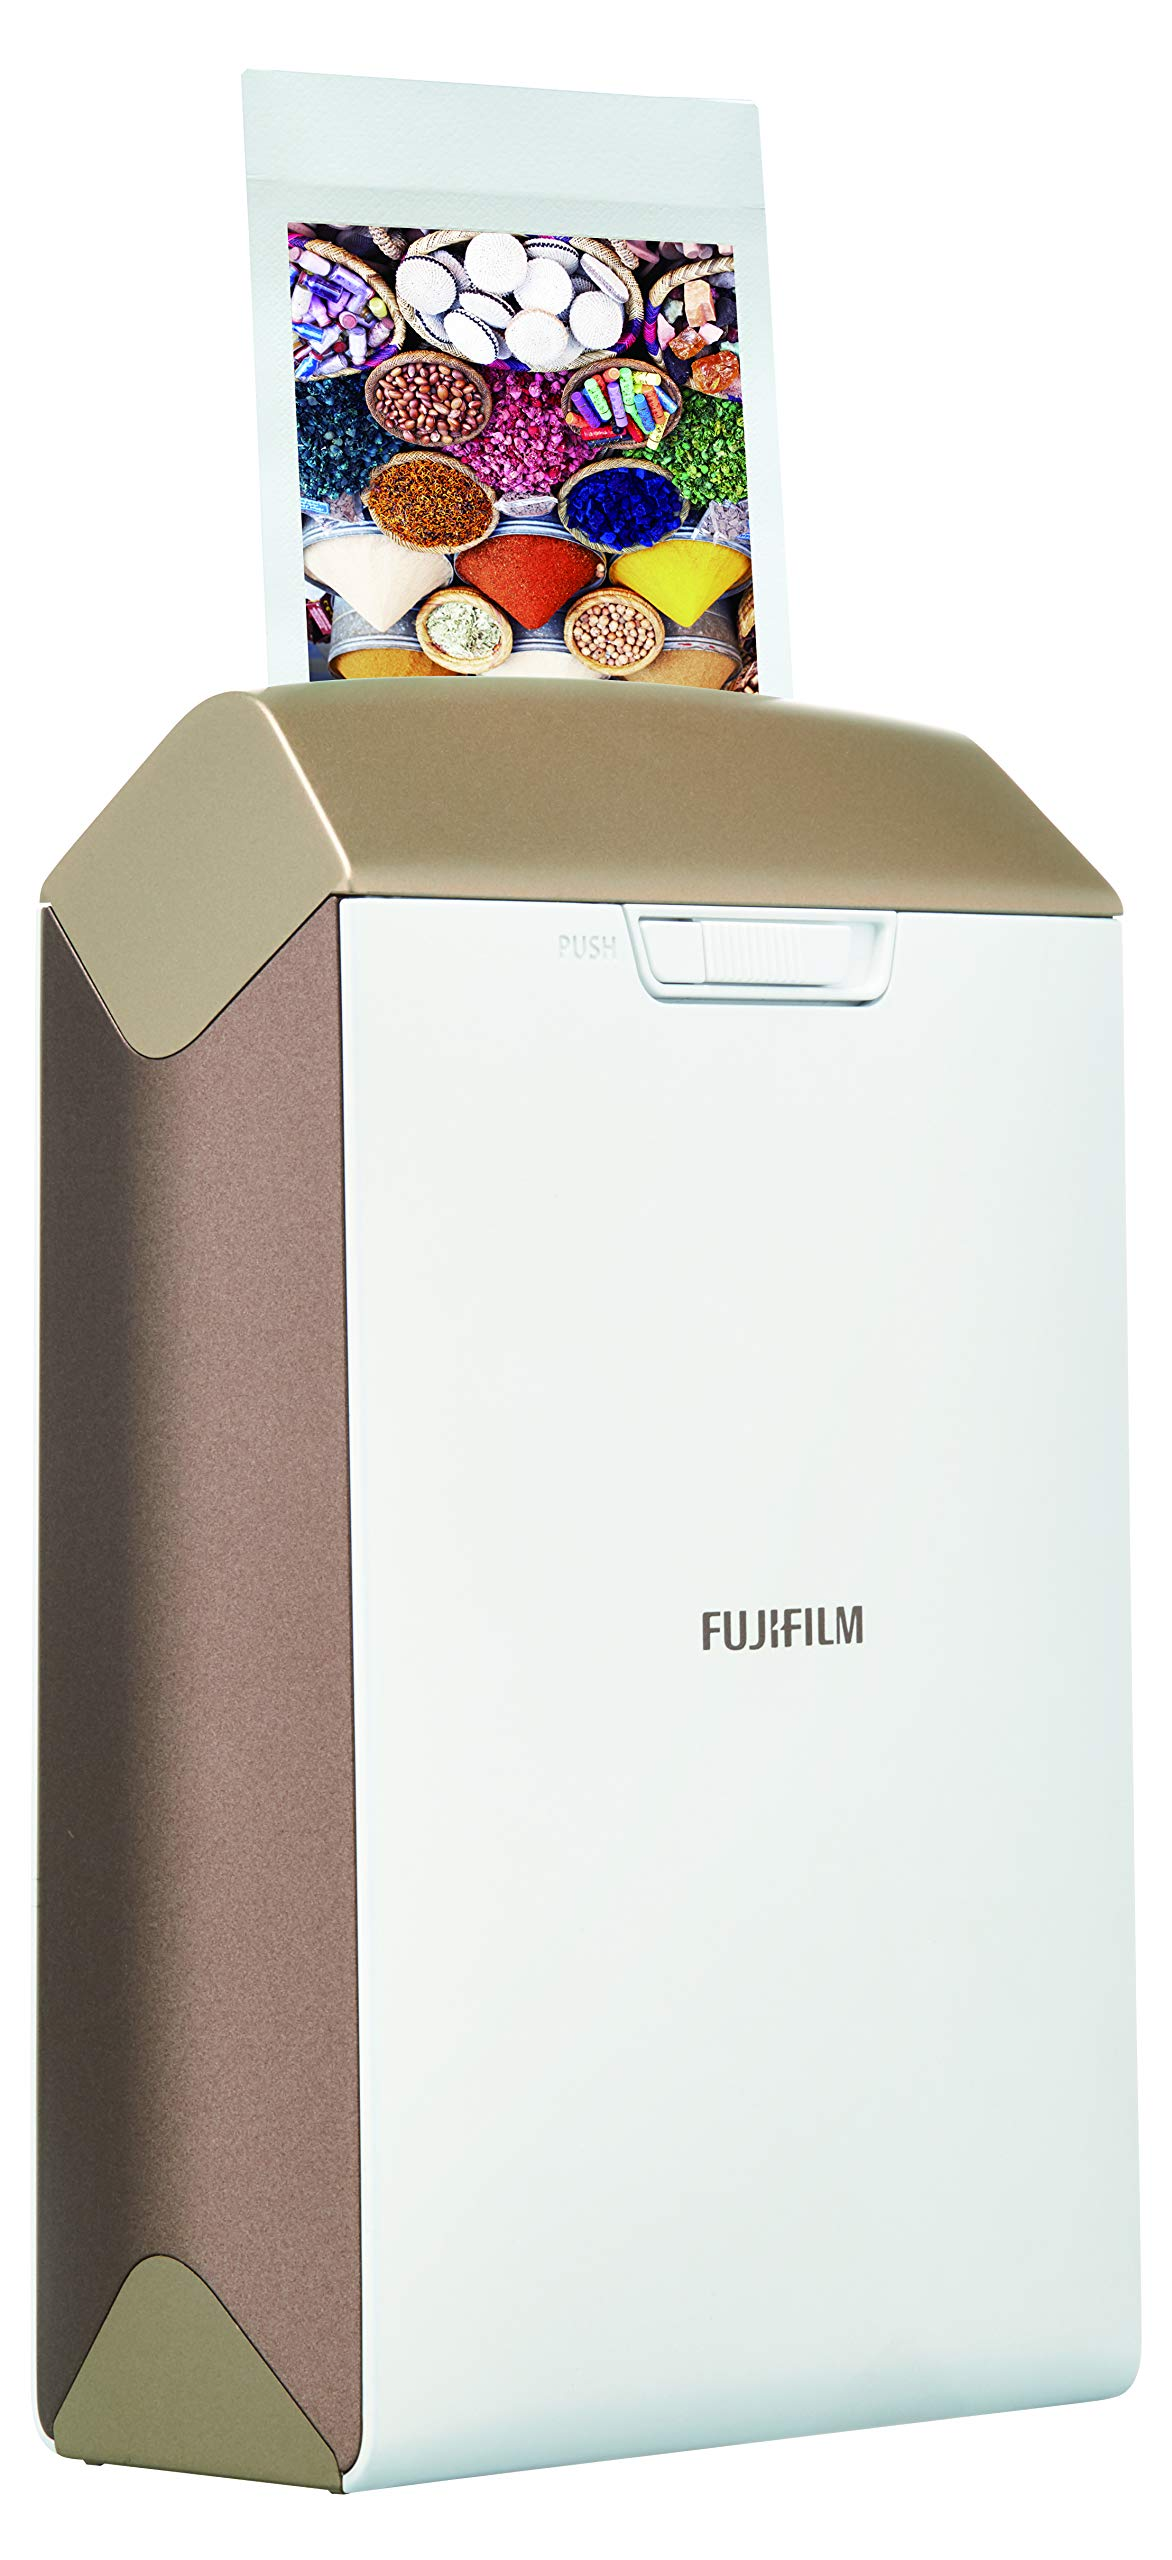 Fujifilm INSTAX Share SP-2 Mobile Printer (Gold) by Fujifilm